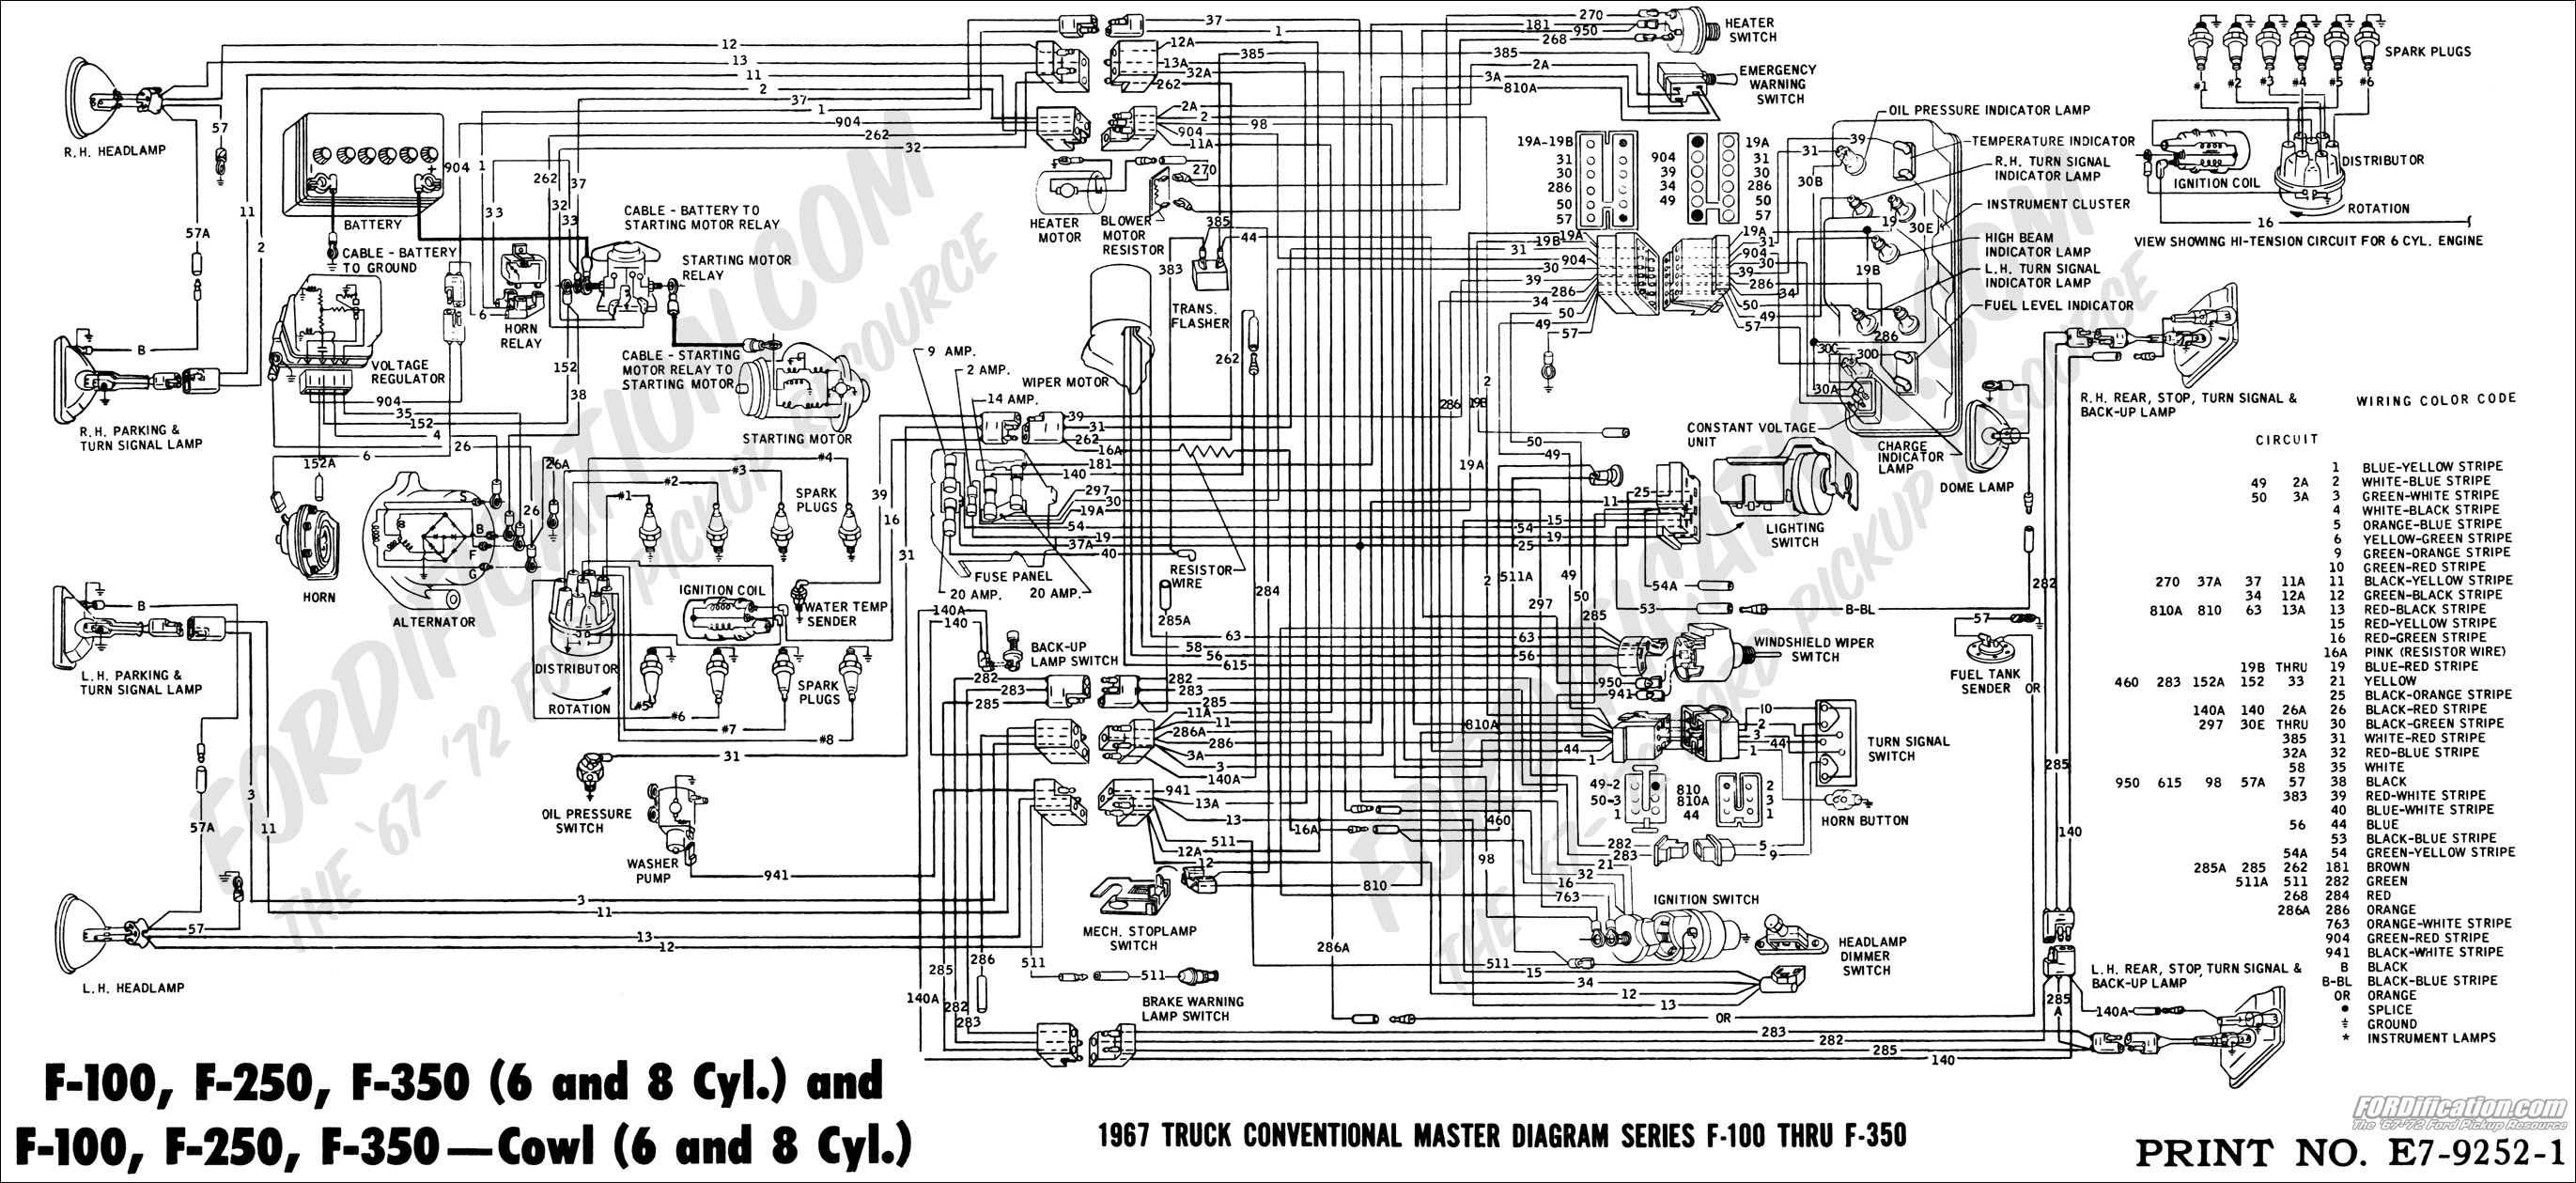 Radio Wire Diagram For 1989 Corvette